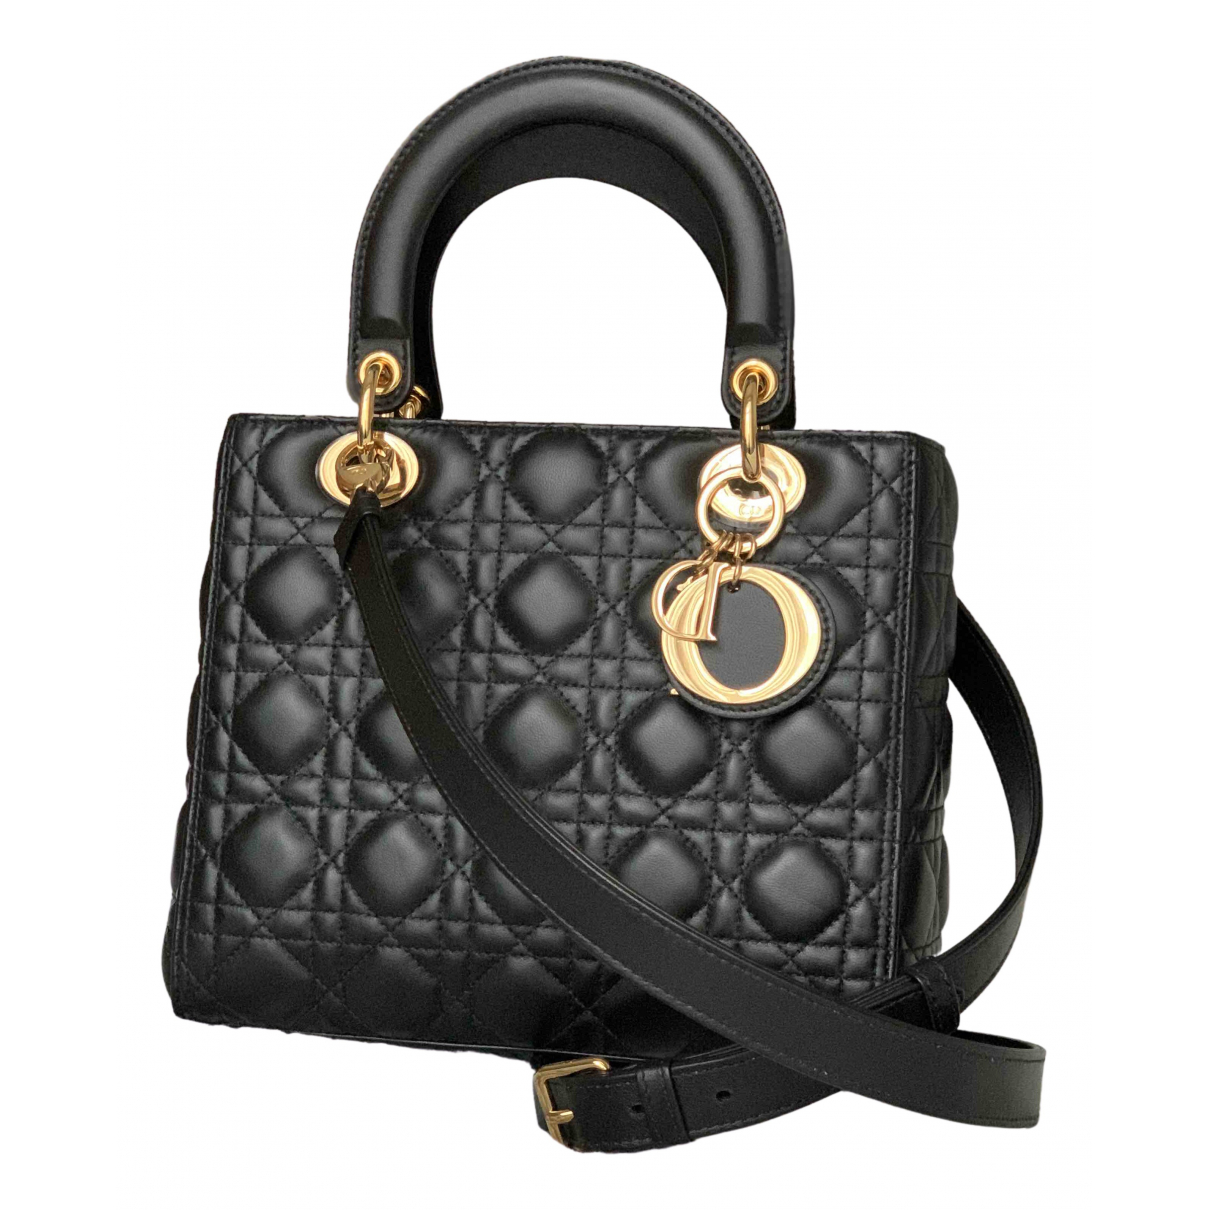 Dior Lady Dior Black Leather handbag for Women N